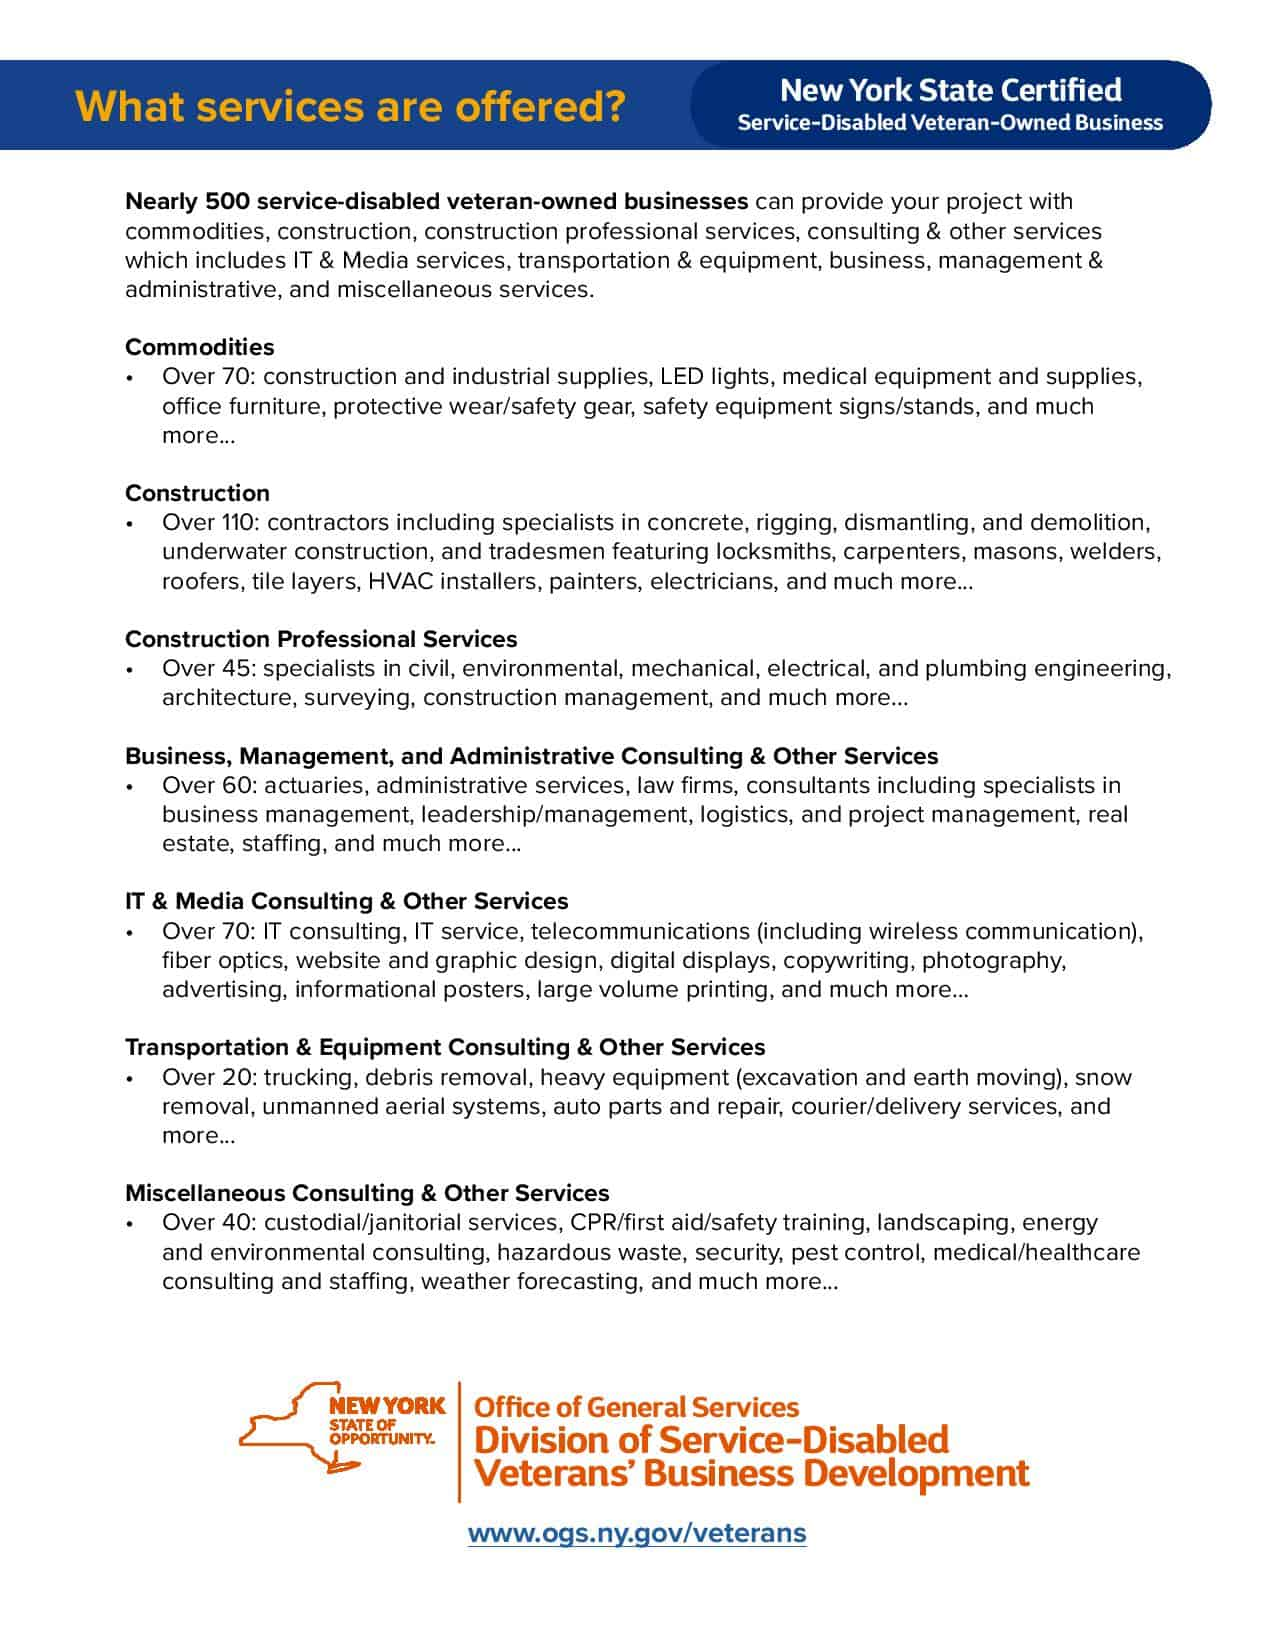 SDVOB_Handout-page-002 | Veterans In Business Network